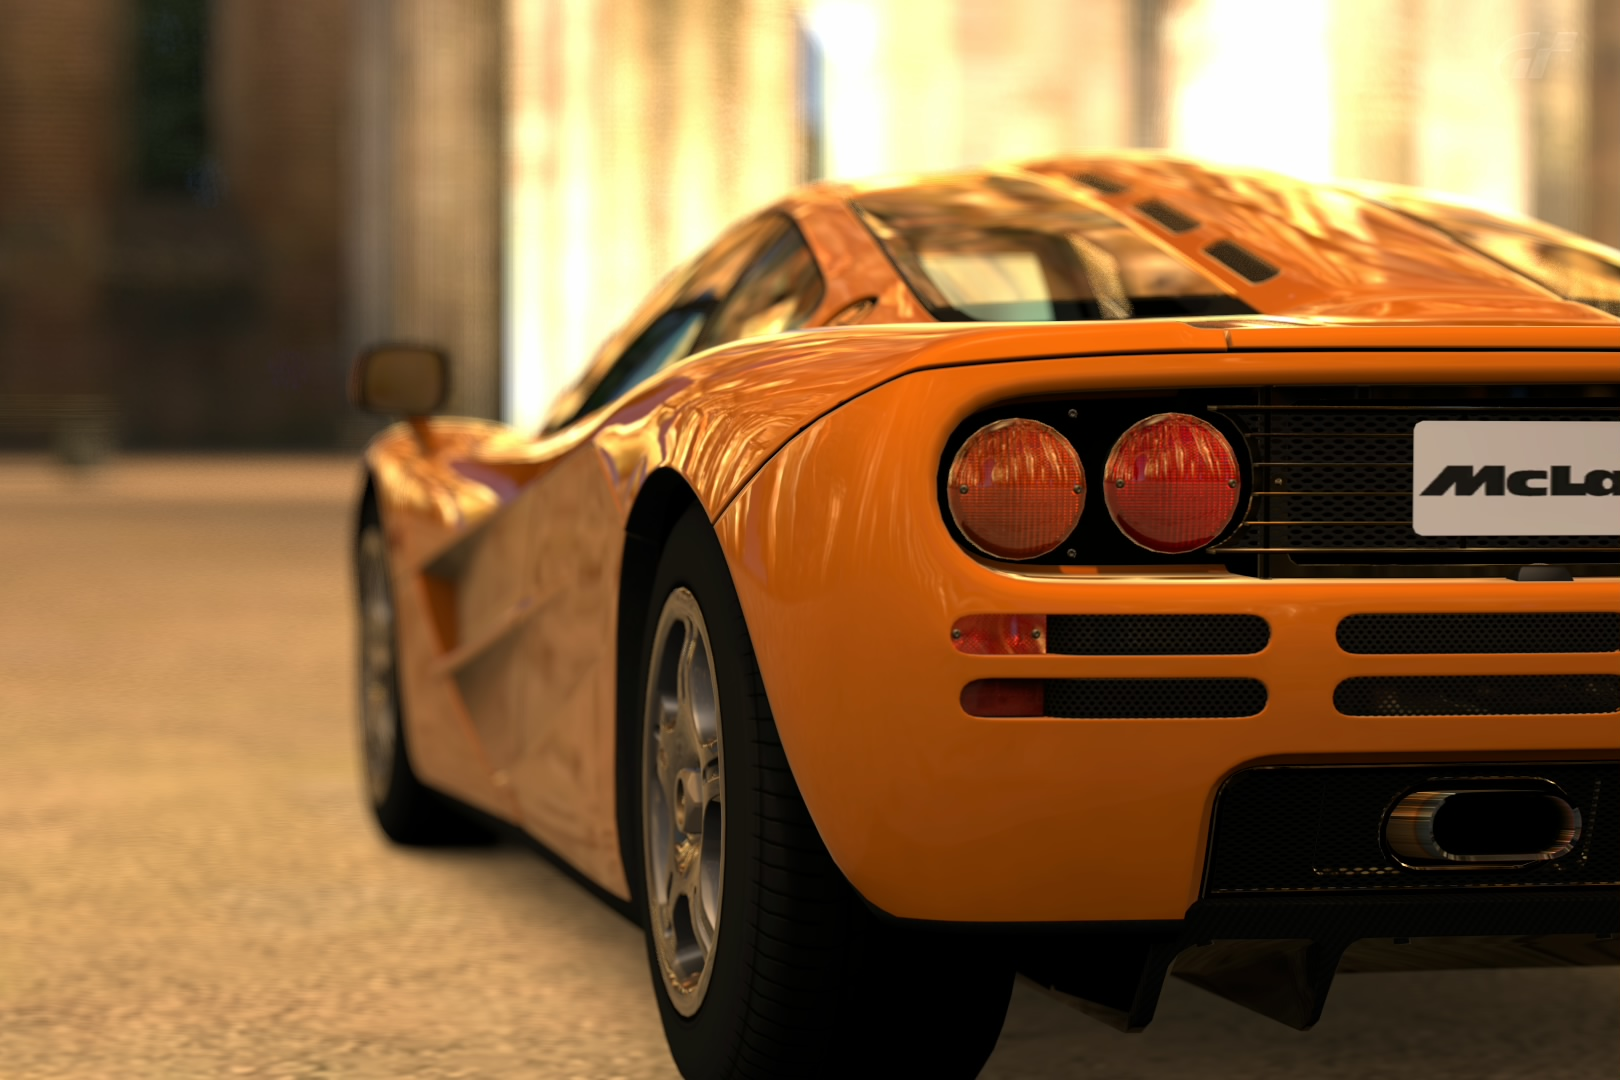 Image of the rear side of a McLaren F1 sports car